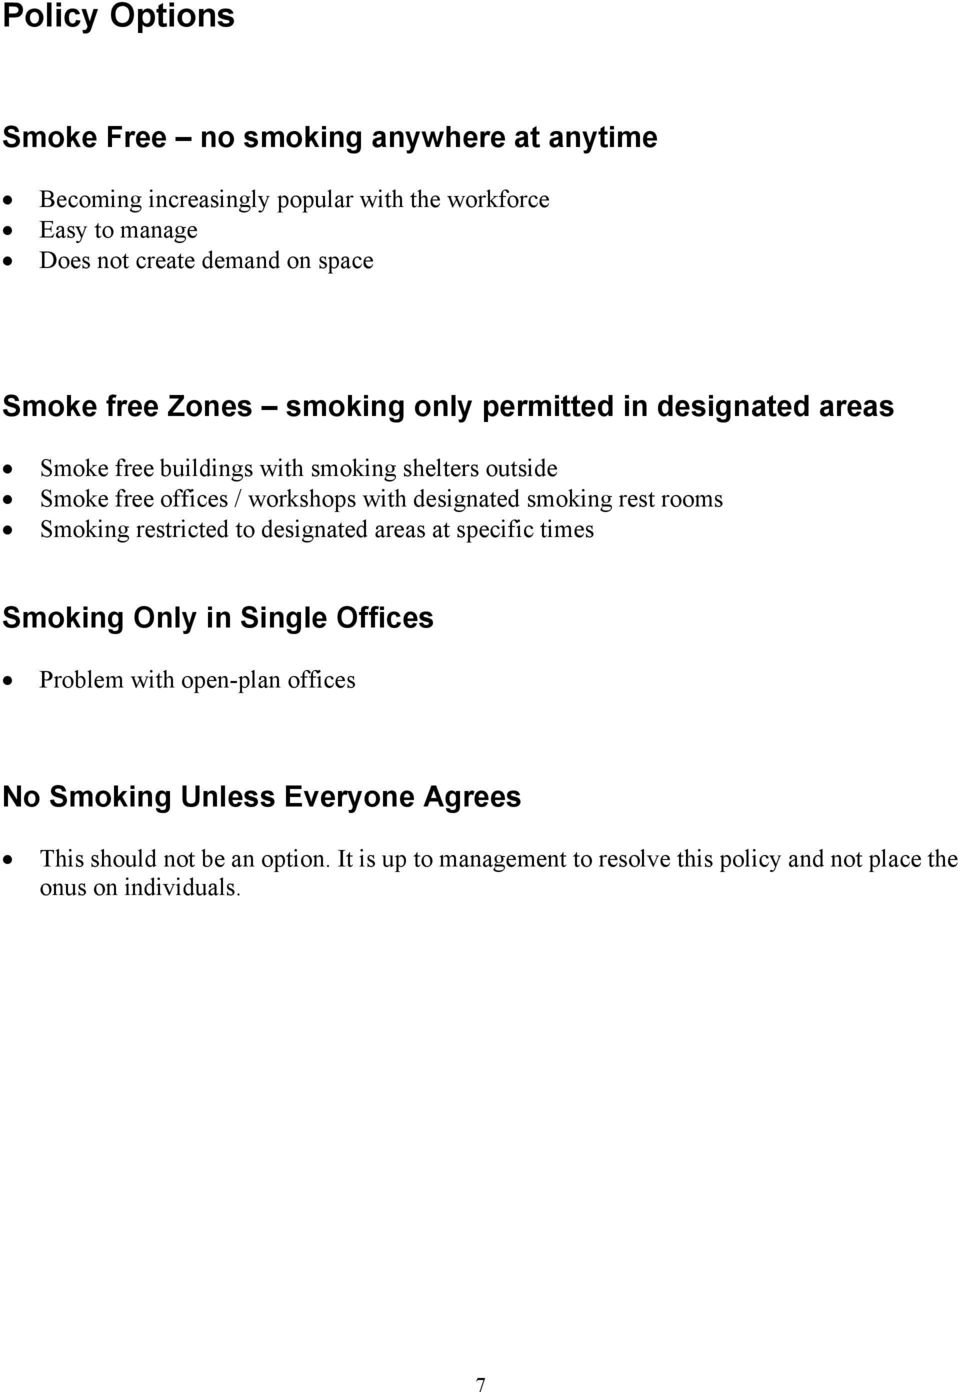 with designated smoking rest rooms Smoking restricted to designated areas at specific times Smoking Only in Single Offices Problem with open-plan